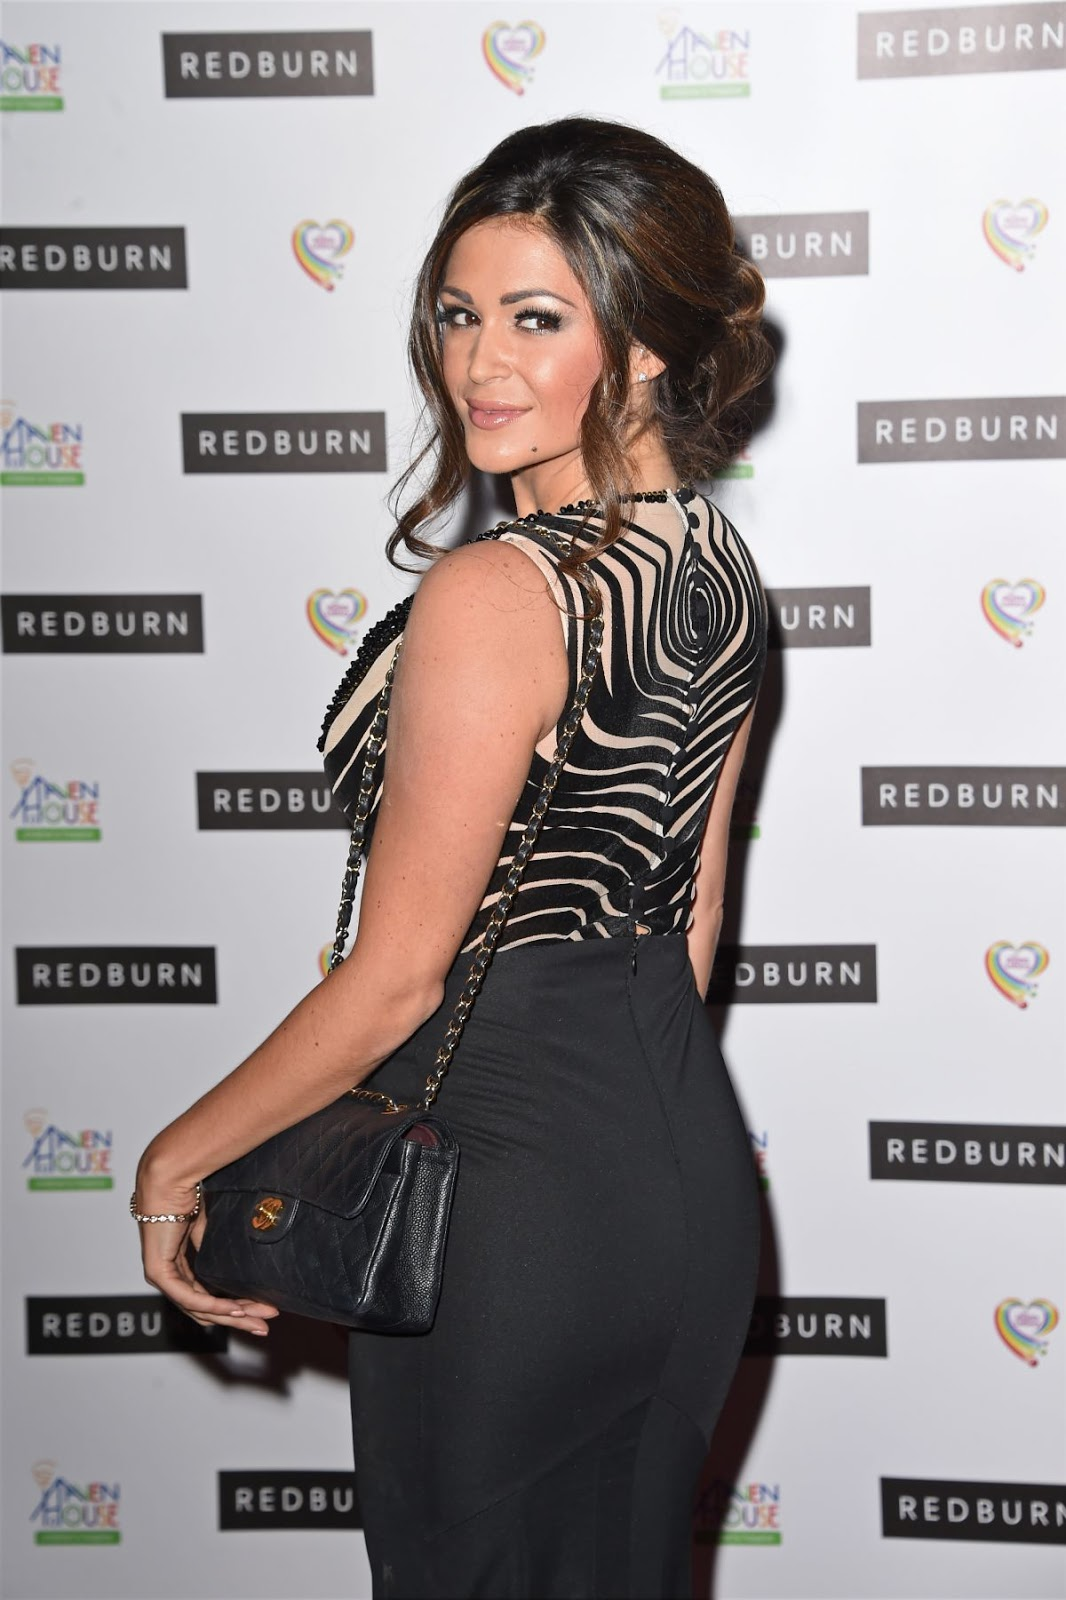 Casey Batchelor At Thr Haven House Autumn Ball In London